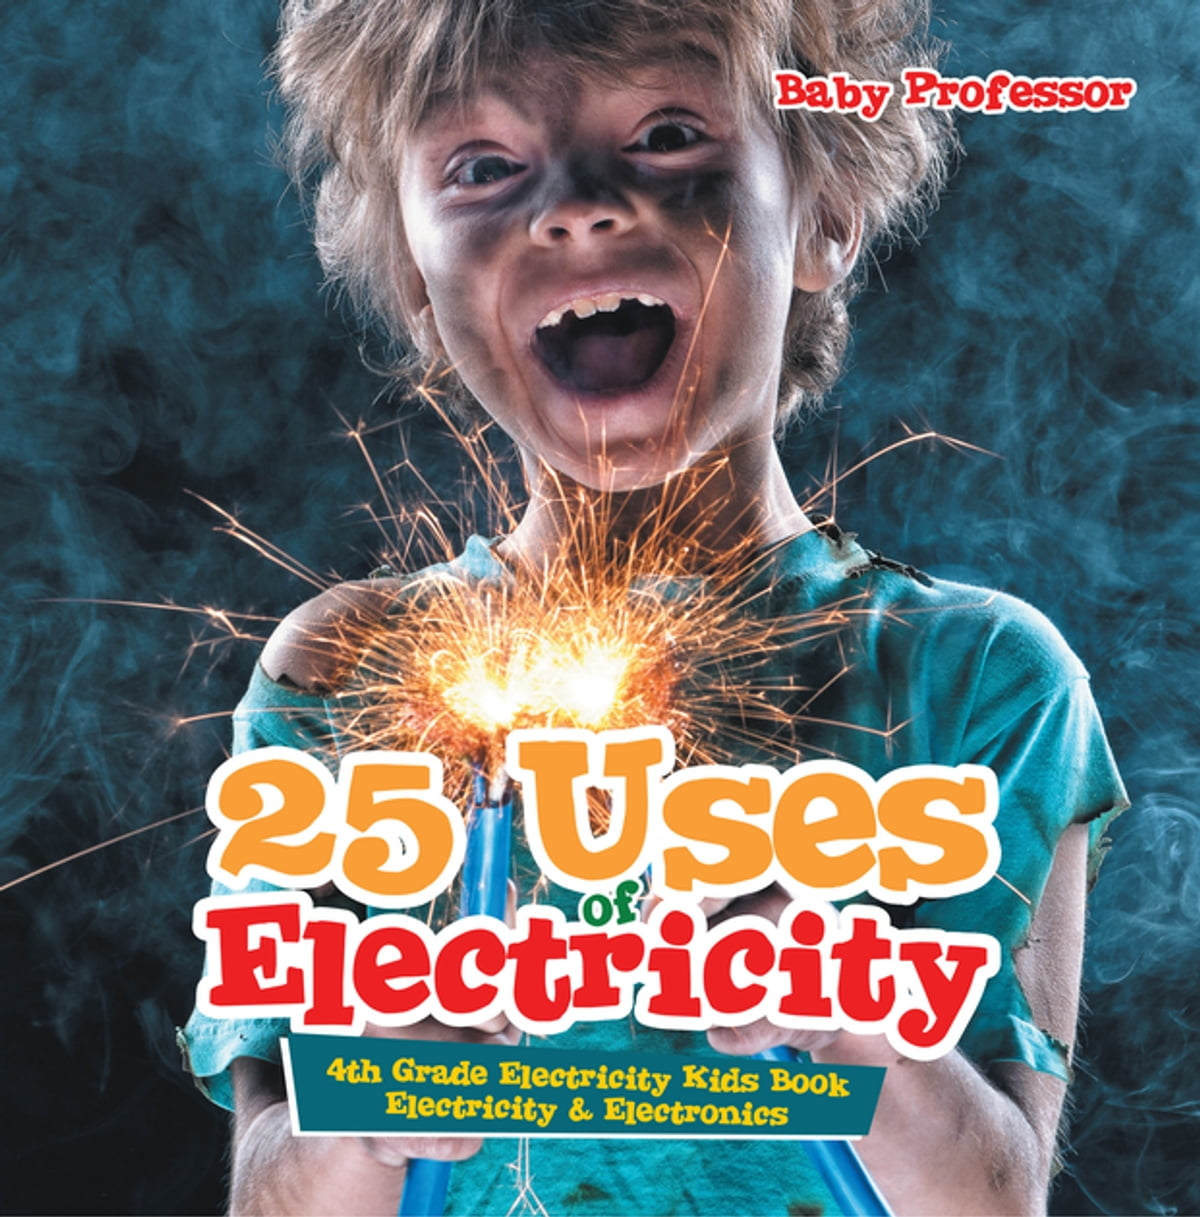 25 Uses Of Electricity 4th Grade Kids Book For Electronics Ebook By Baby Professor Rakuten Kobo